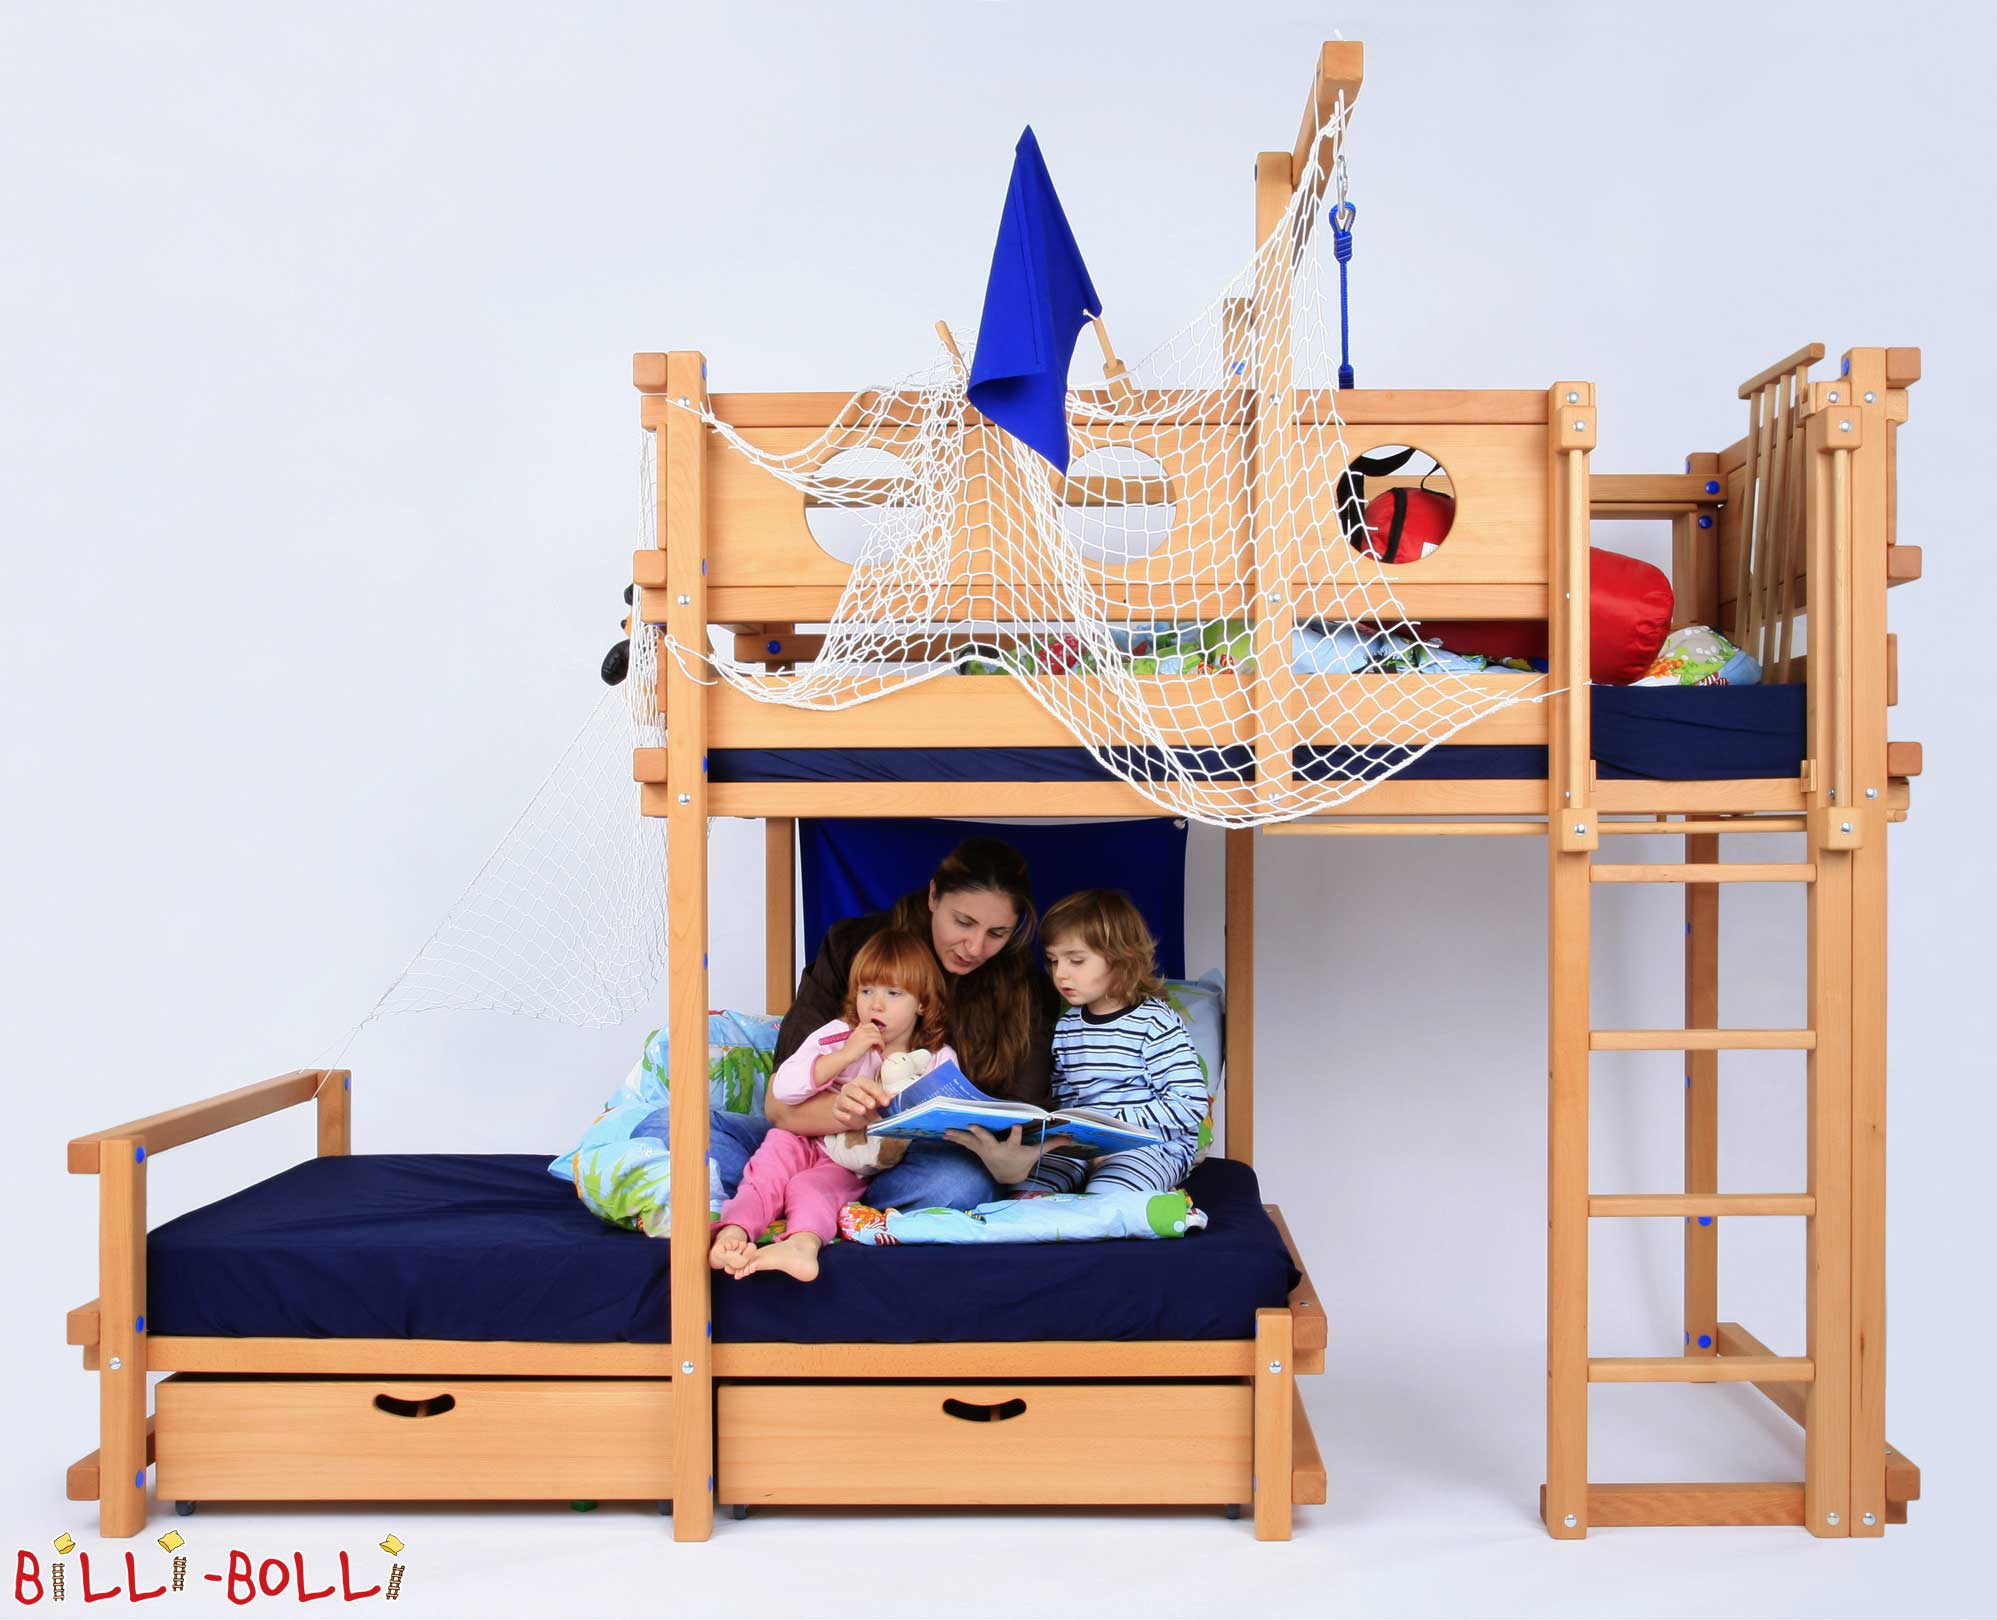 etagenbett seitlich versetzt billi bolli kinderm bel. Black Bedroom Furniture Sets. Home Design Ideas